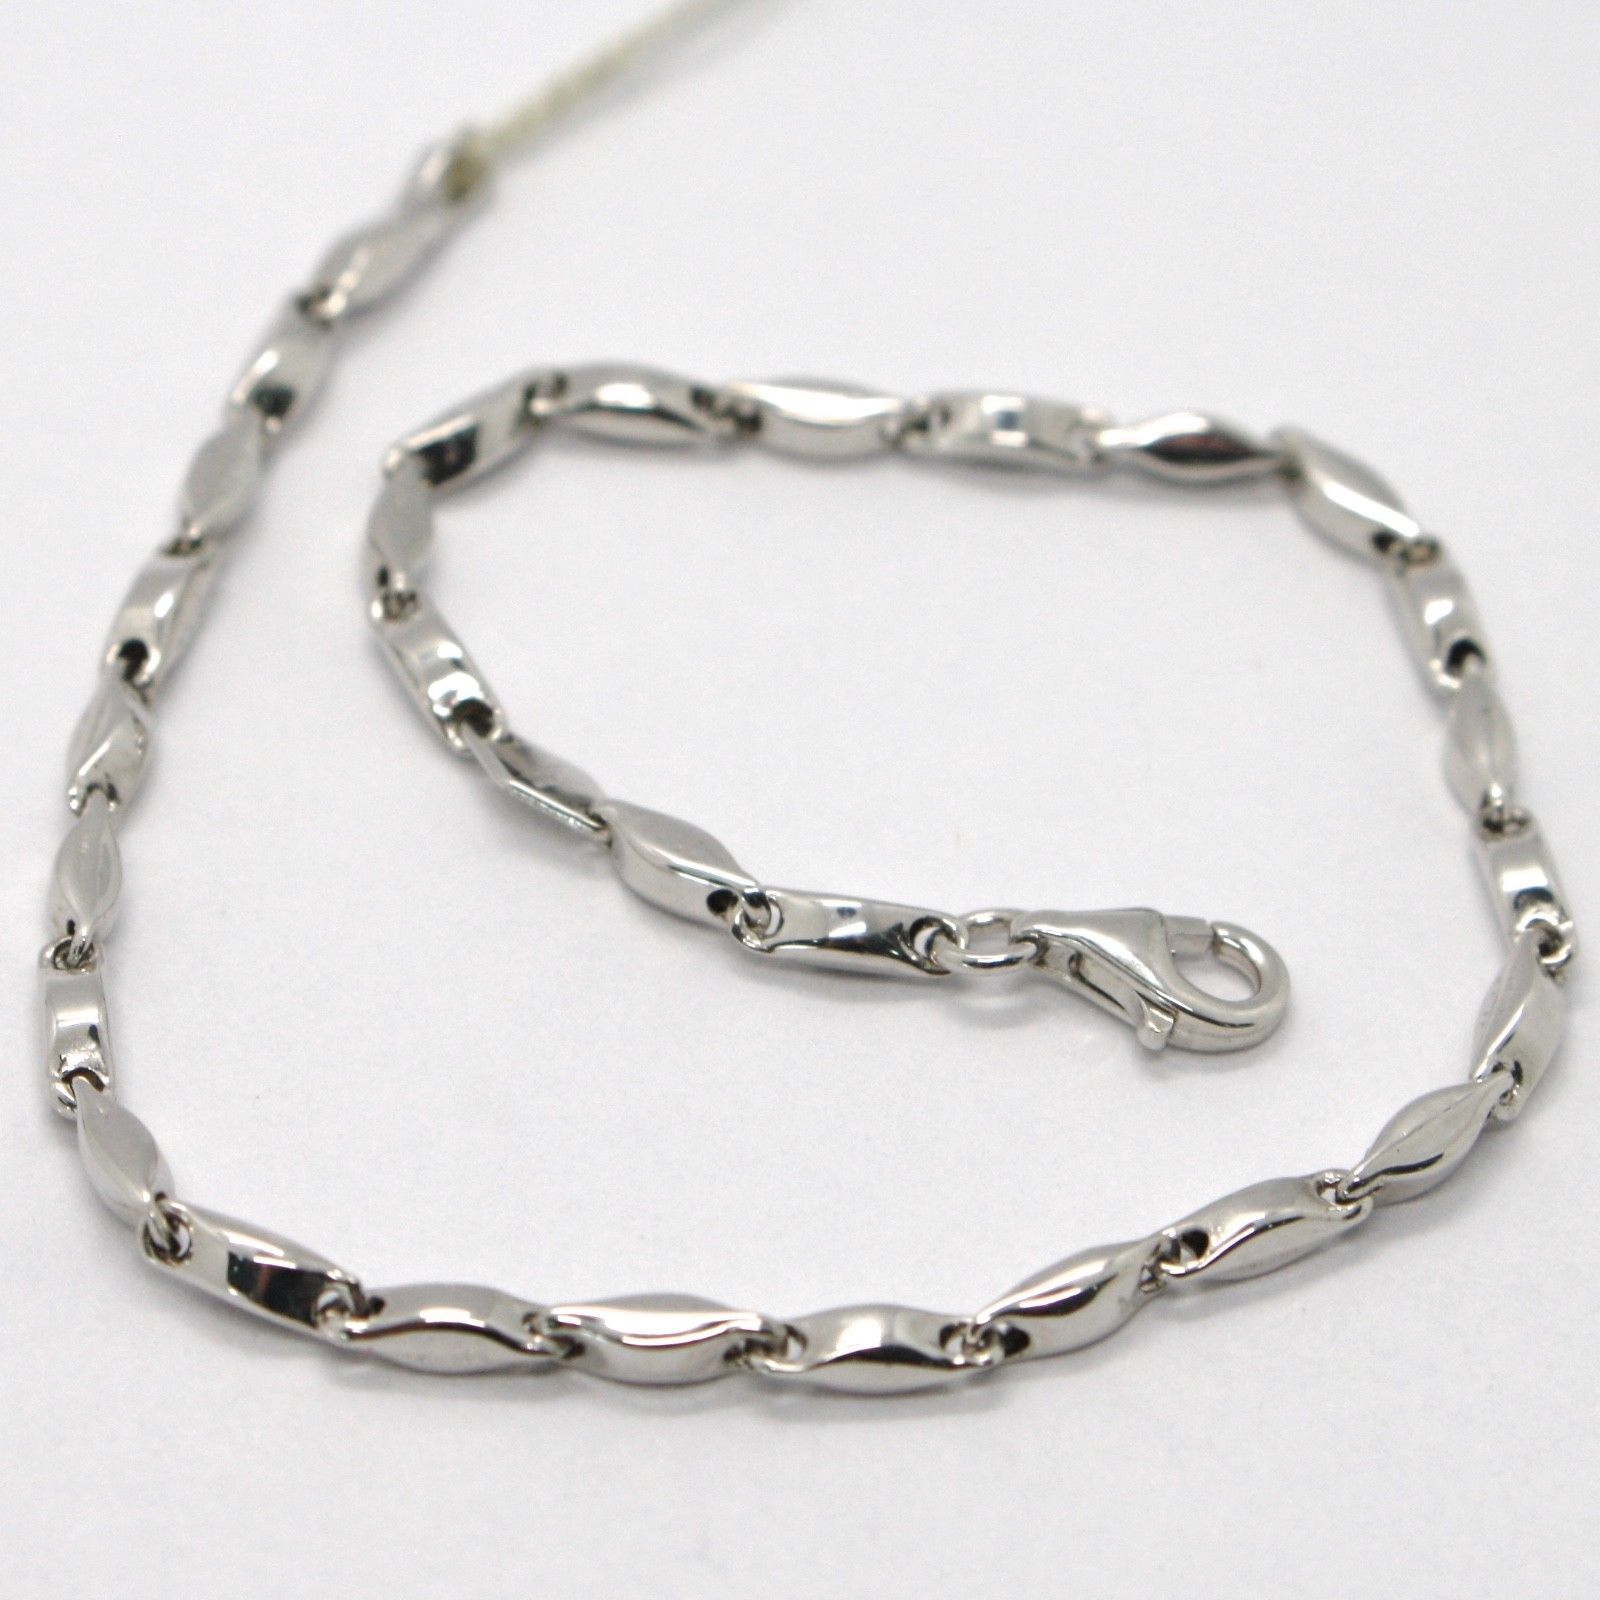 18K WHITE GOLD BRACELET ALTERNATE TUBE ONDULATE OVAL LINK, MADE IN ITALY